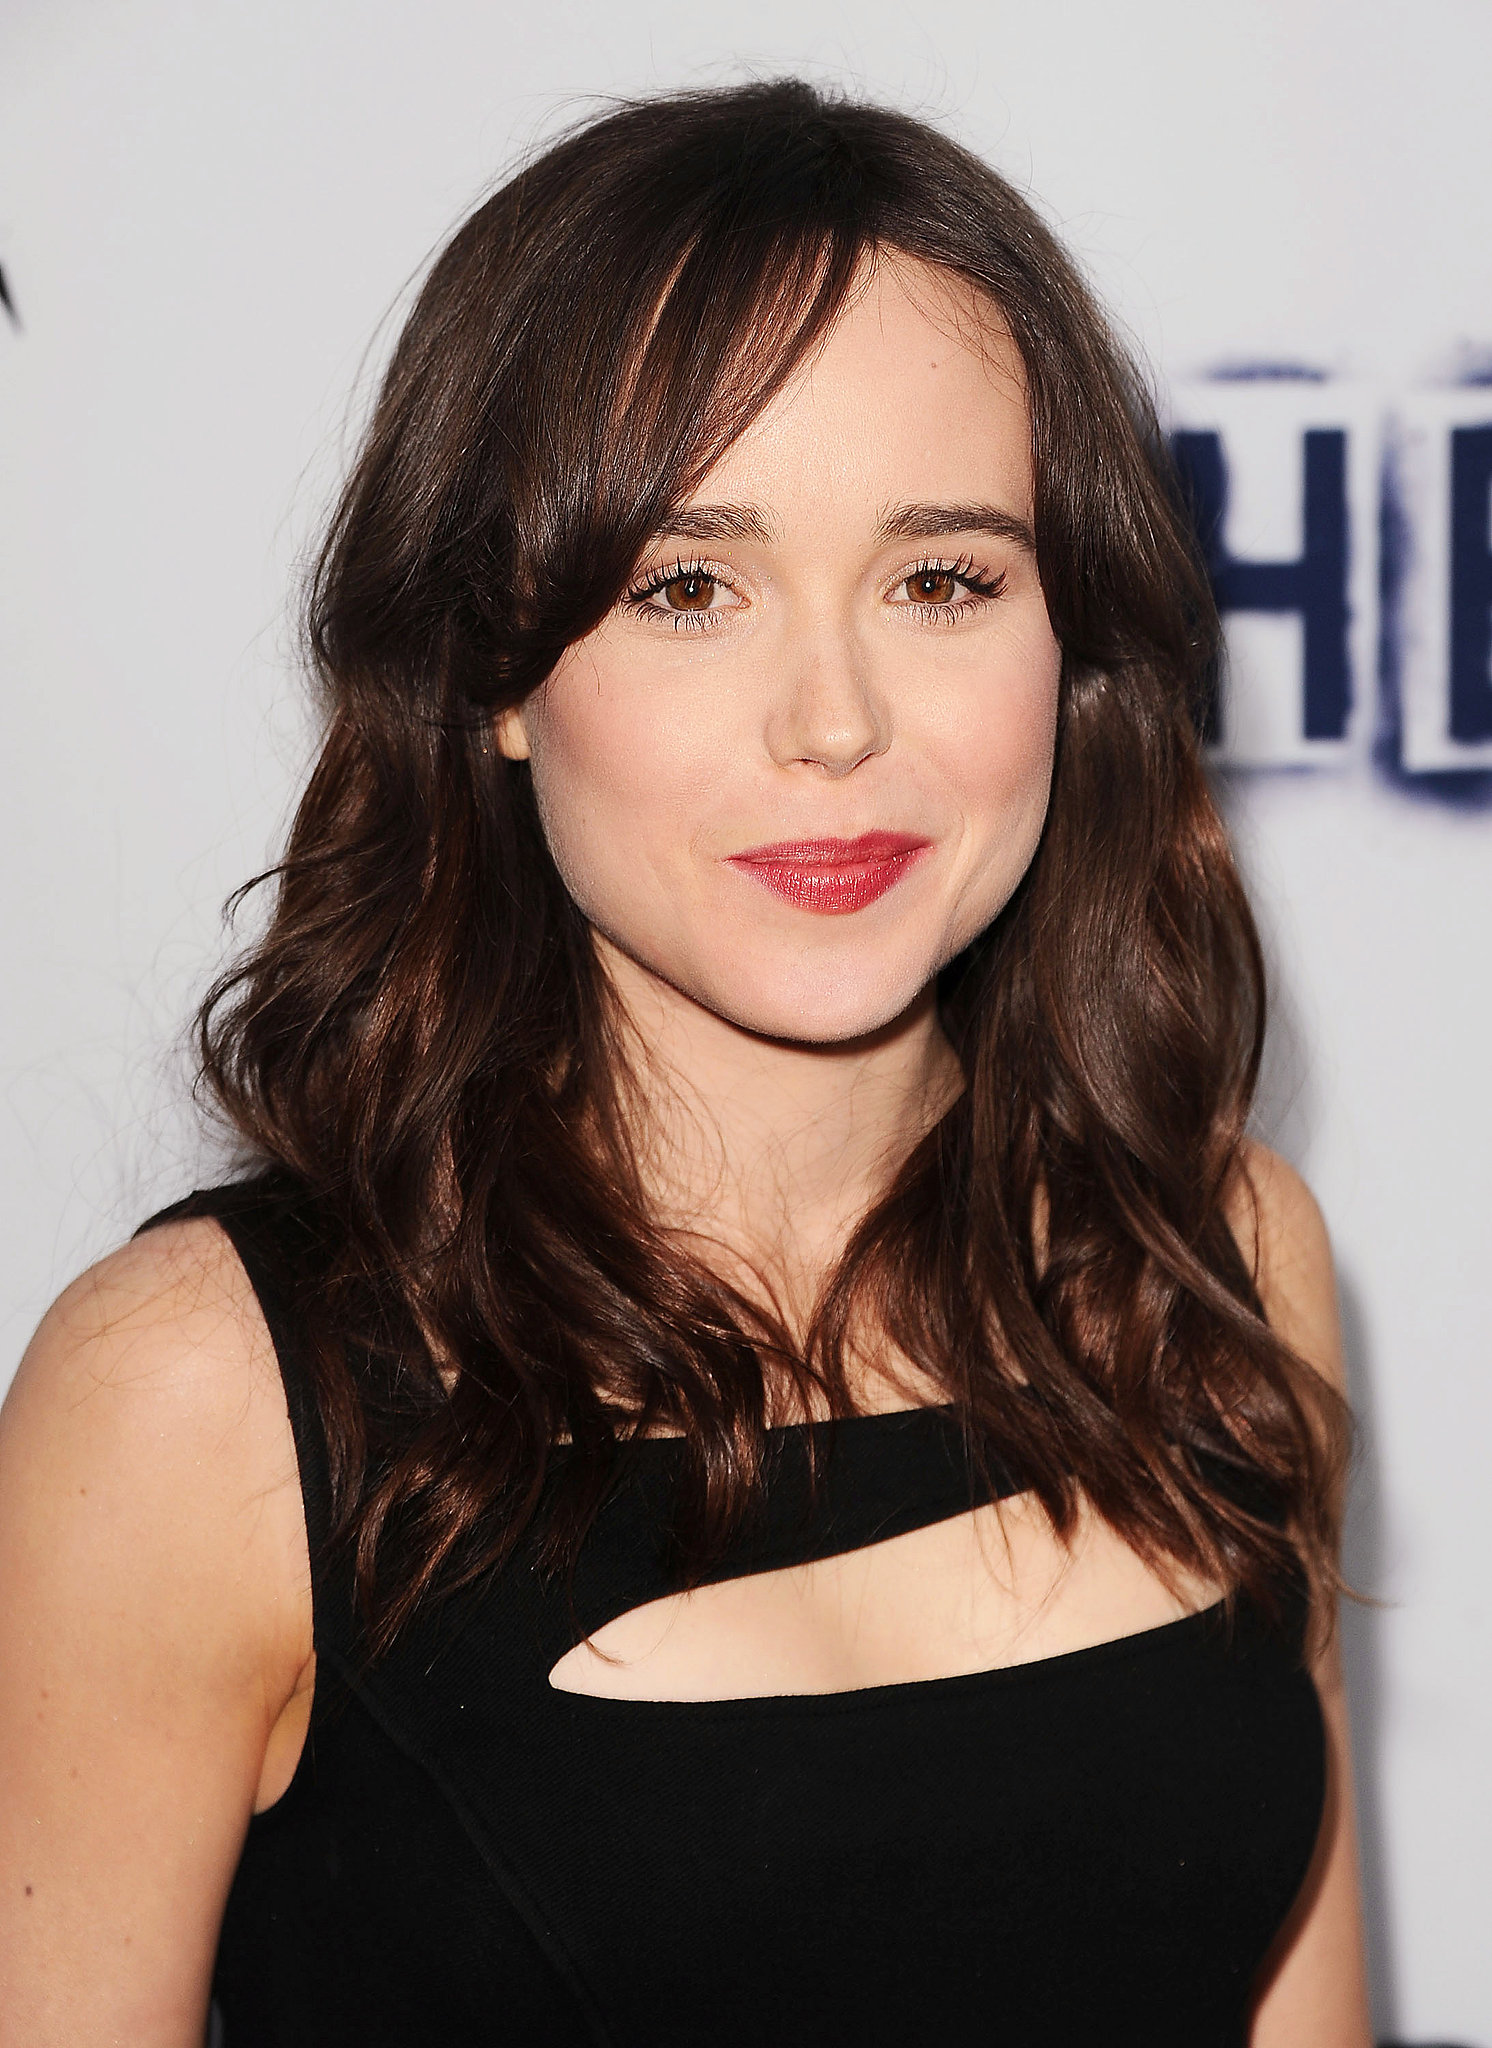 At The East's premiere in LA, Ellen Page showed us you don't need a complicated makeup look to be polished. All you need is a little foundation, mascara, and a rosy lipstick.